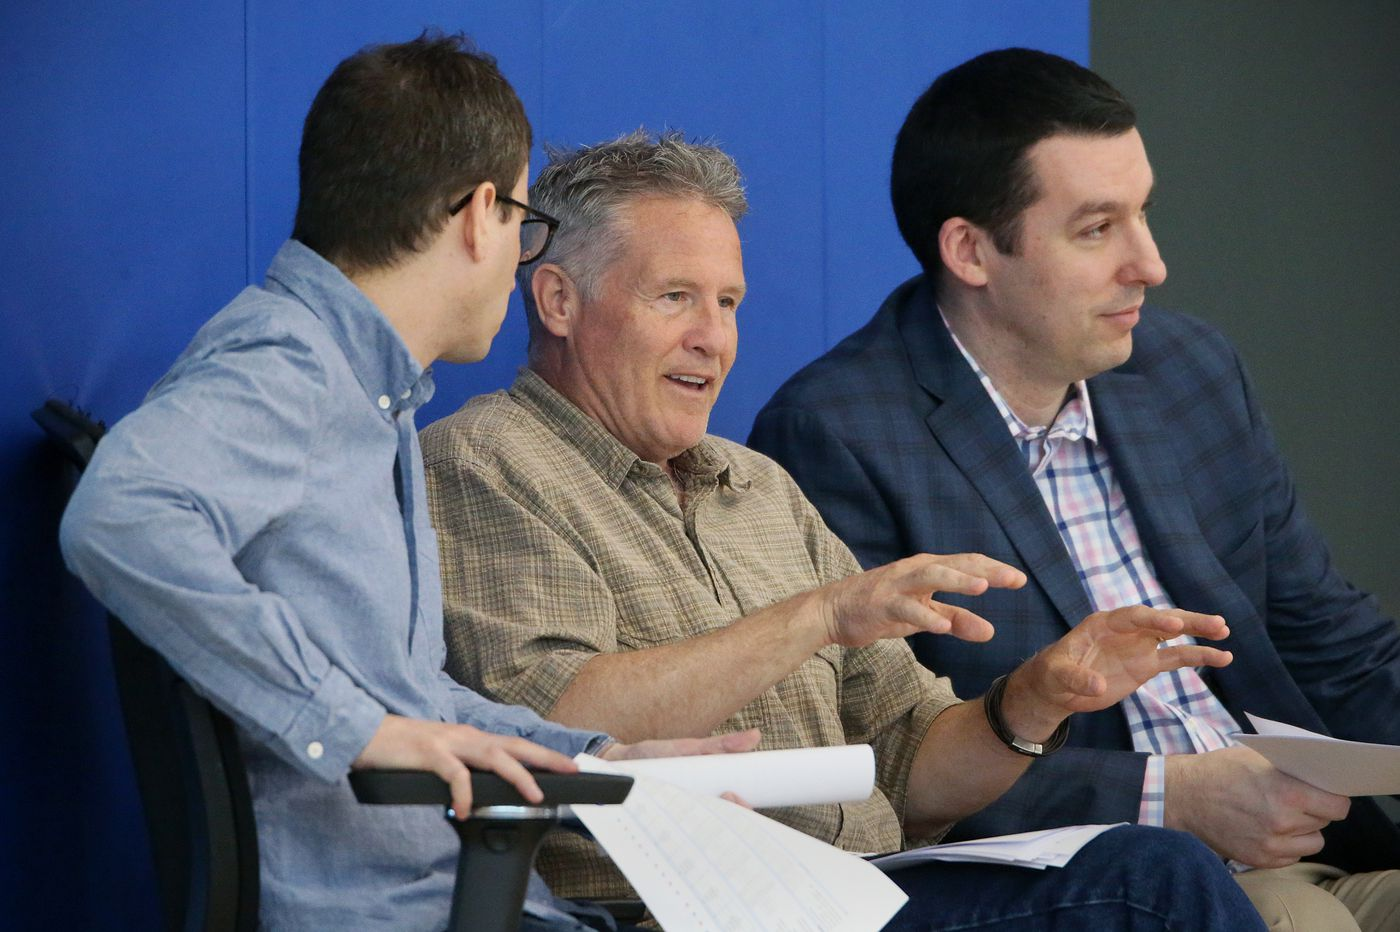 Sixers shake up scouting department by hiring one scout, parting ways with another